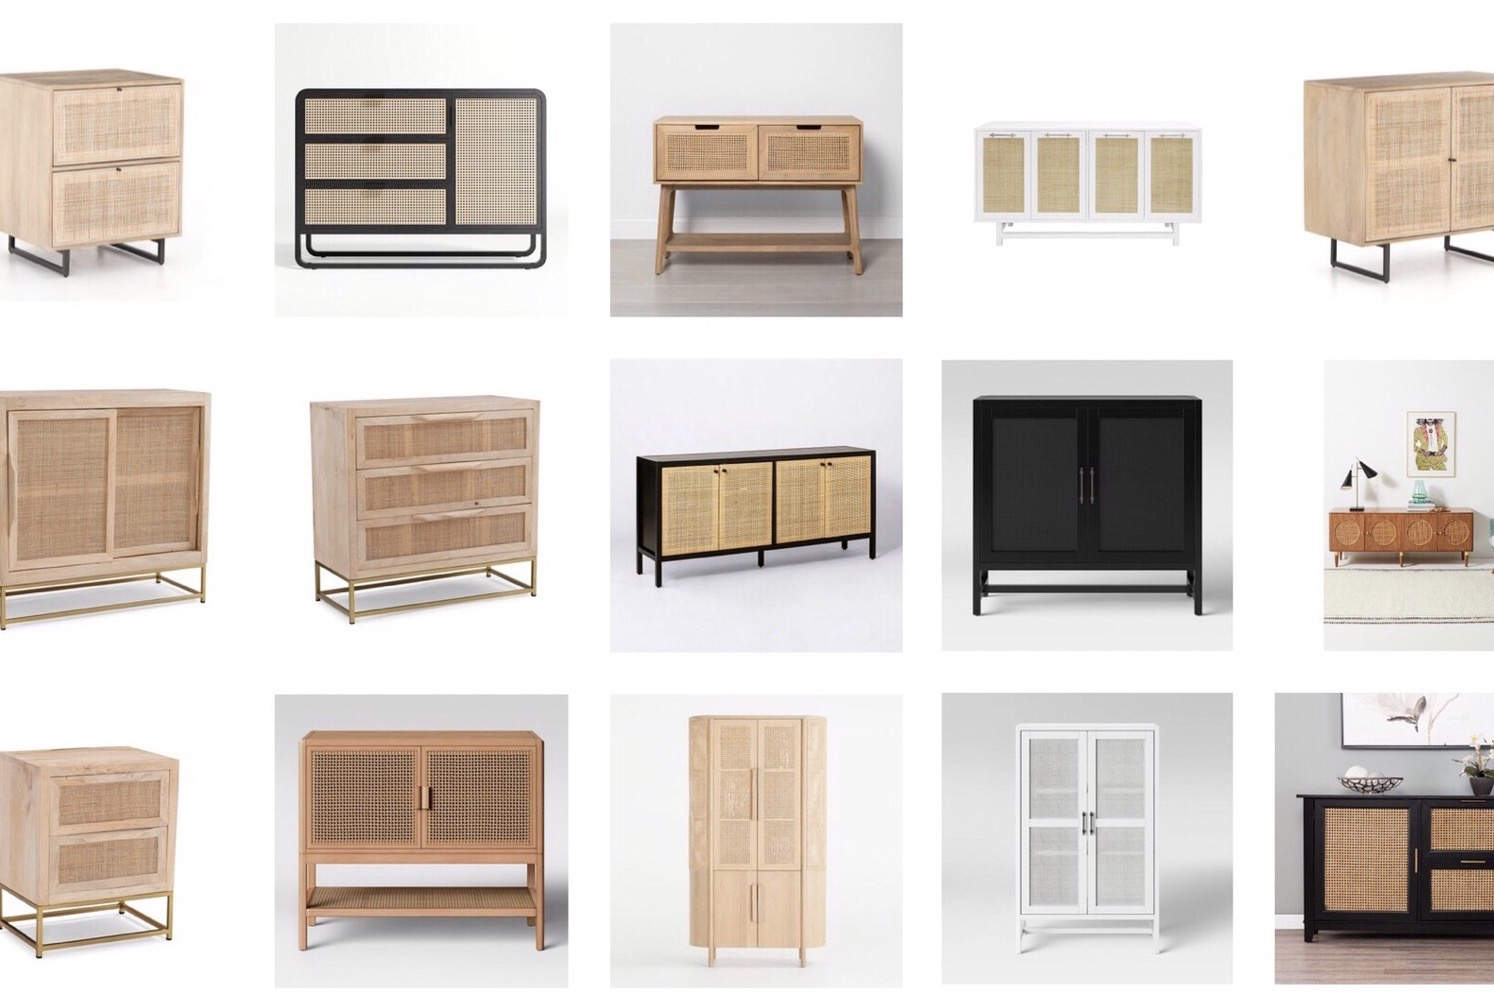 Favourite Finds Cane Cabinets Harlow and Thistle